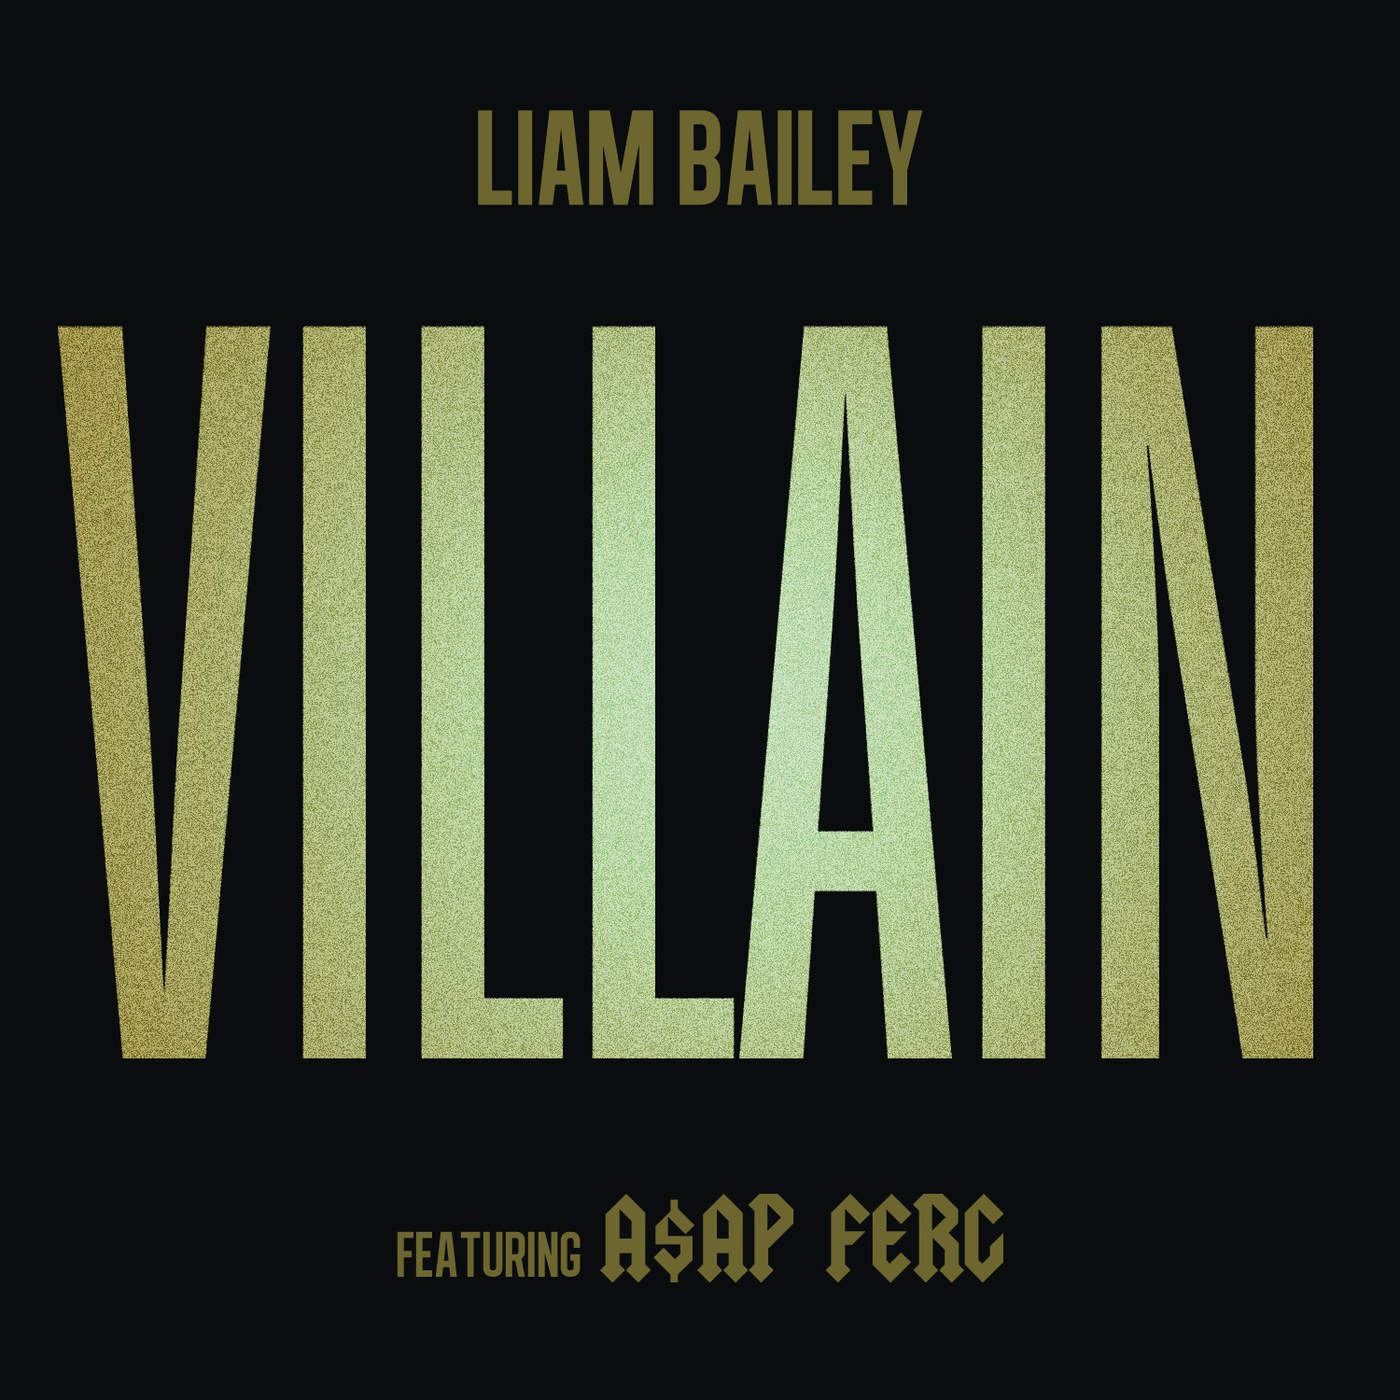 Liam Bailey - Villain (feat. A$AP Ferg) - Single Cover